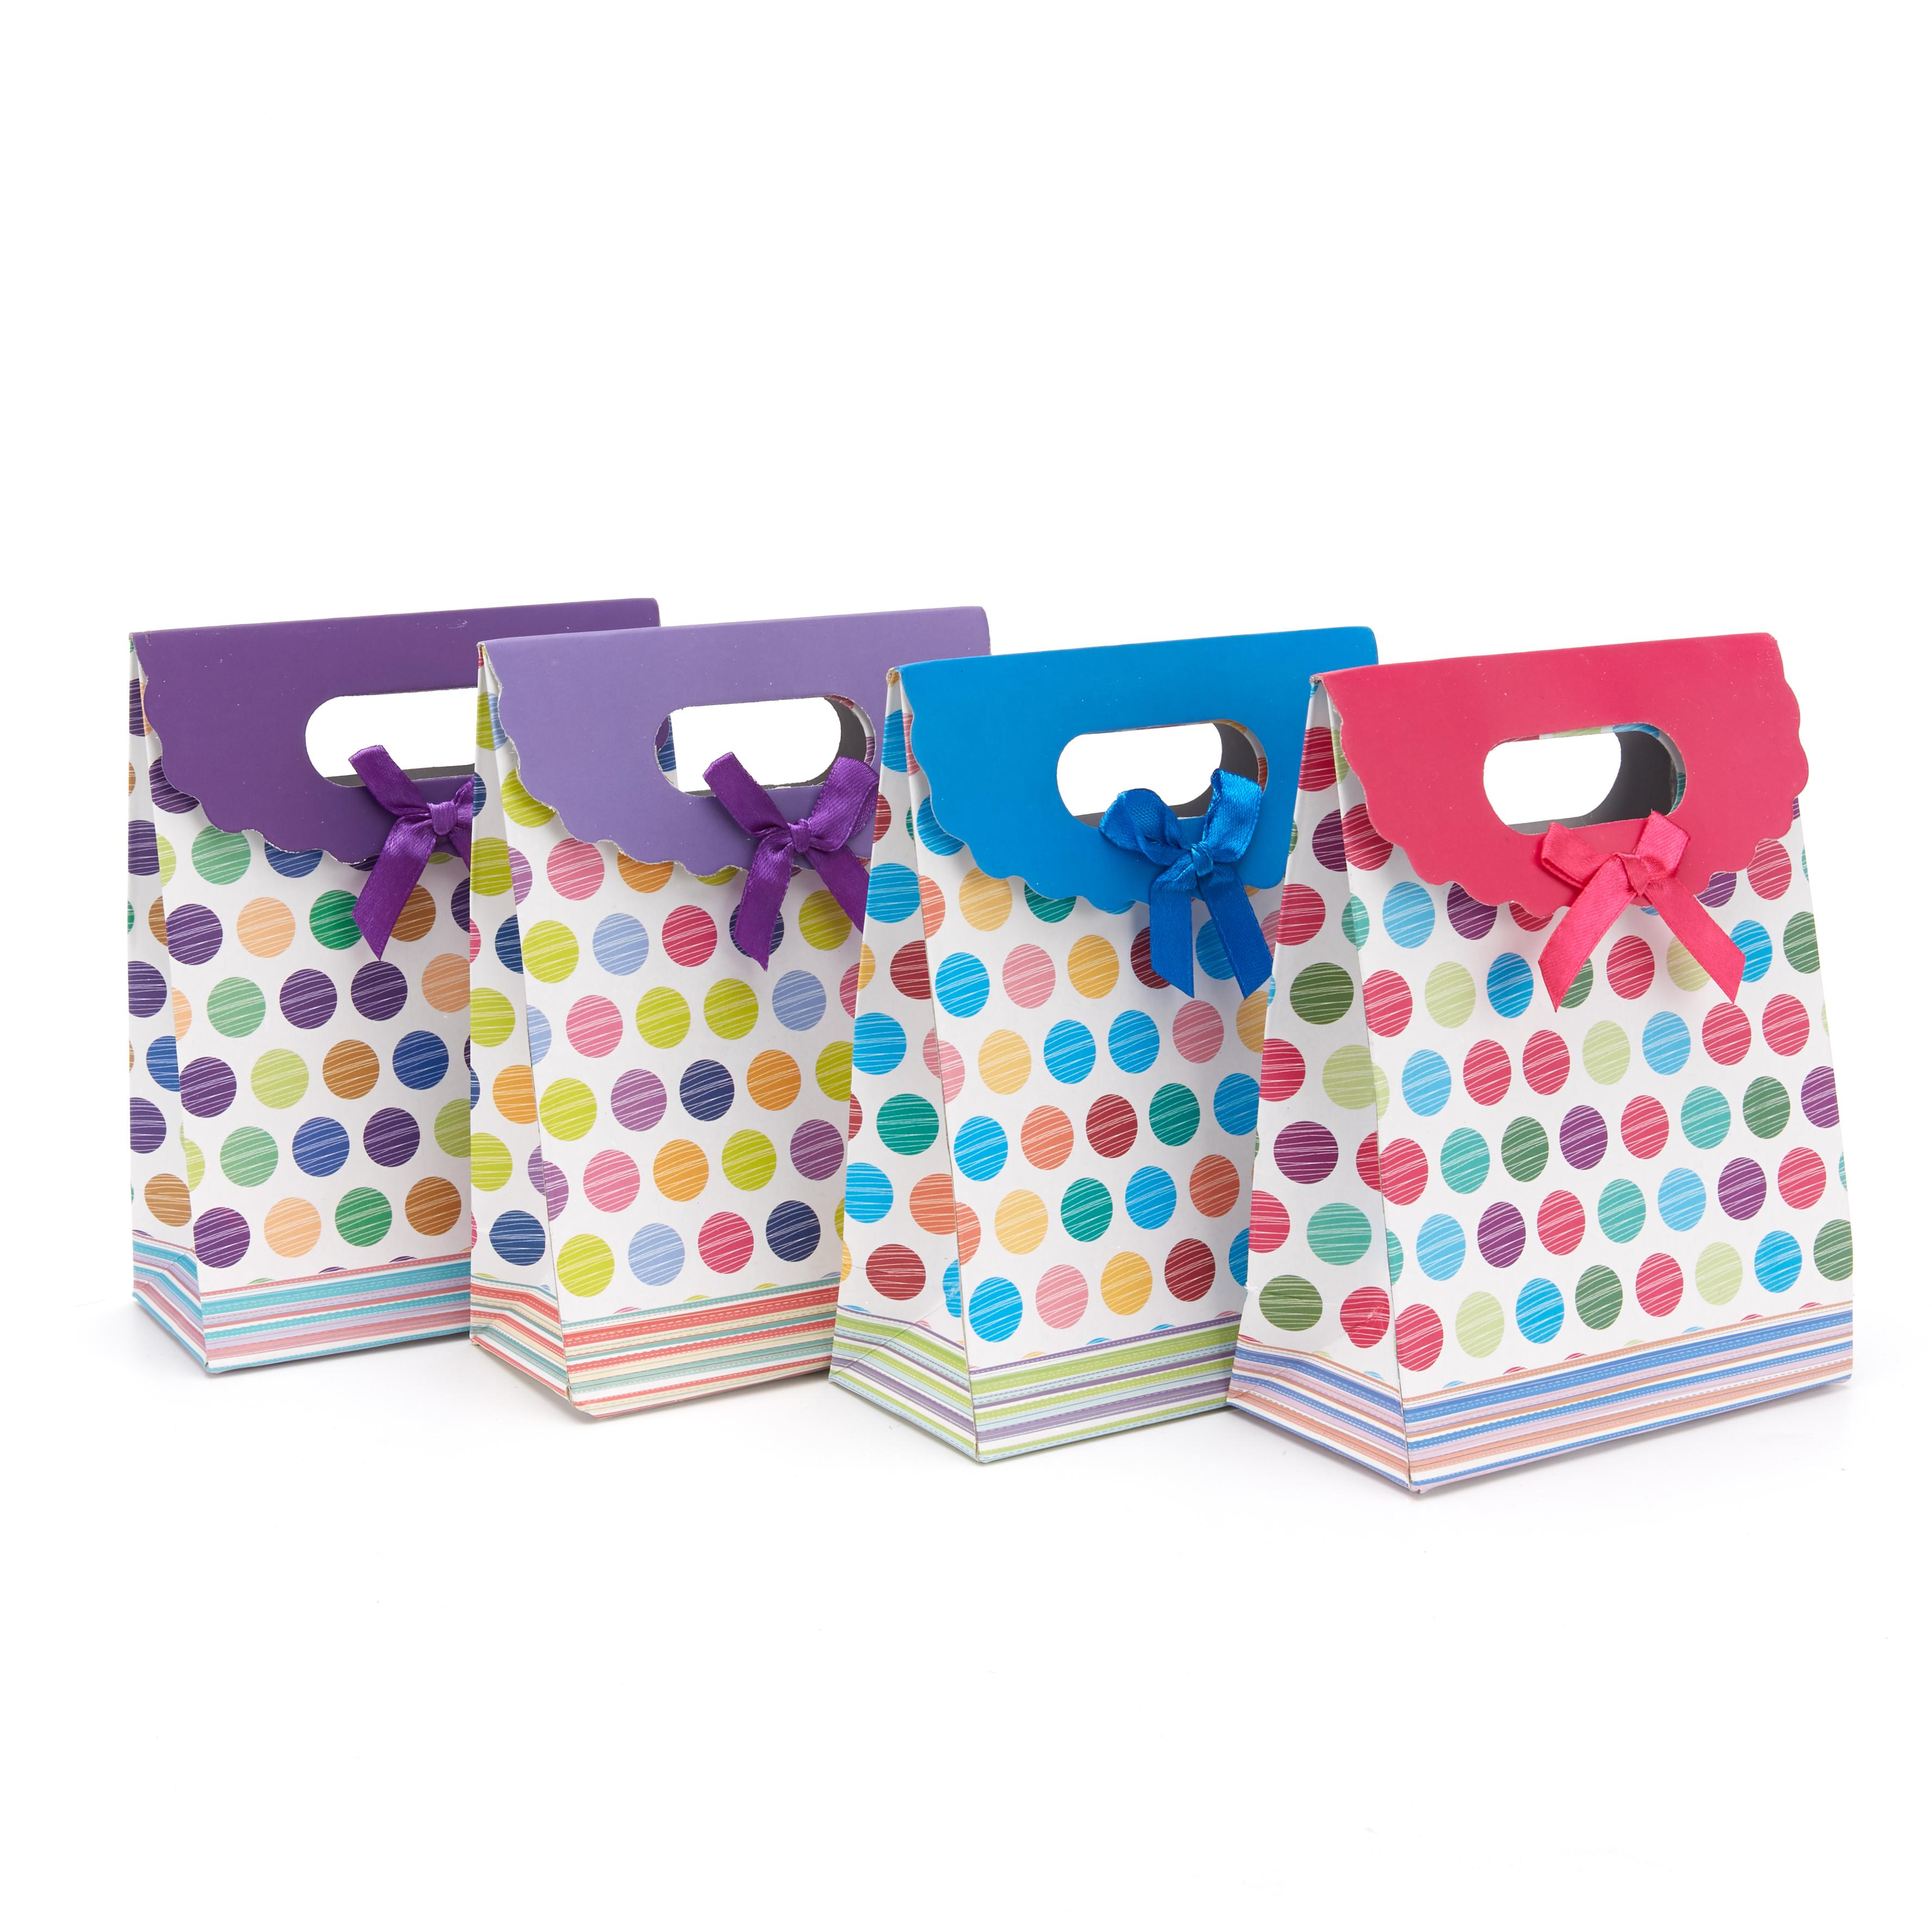 Small fresh and cute envelope paper gift bag without handle bow 12 * 6 * 16 in stock, customizable pattern